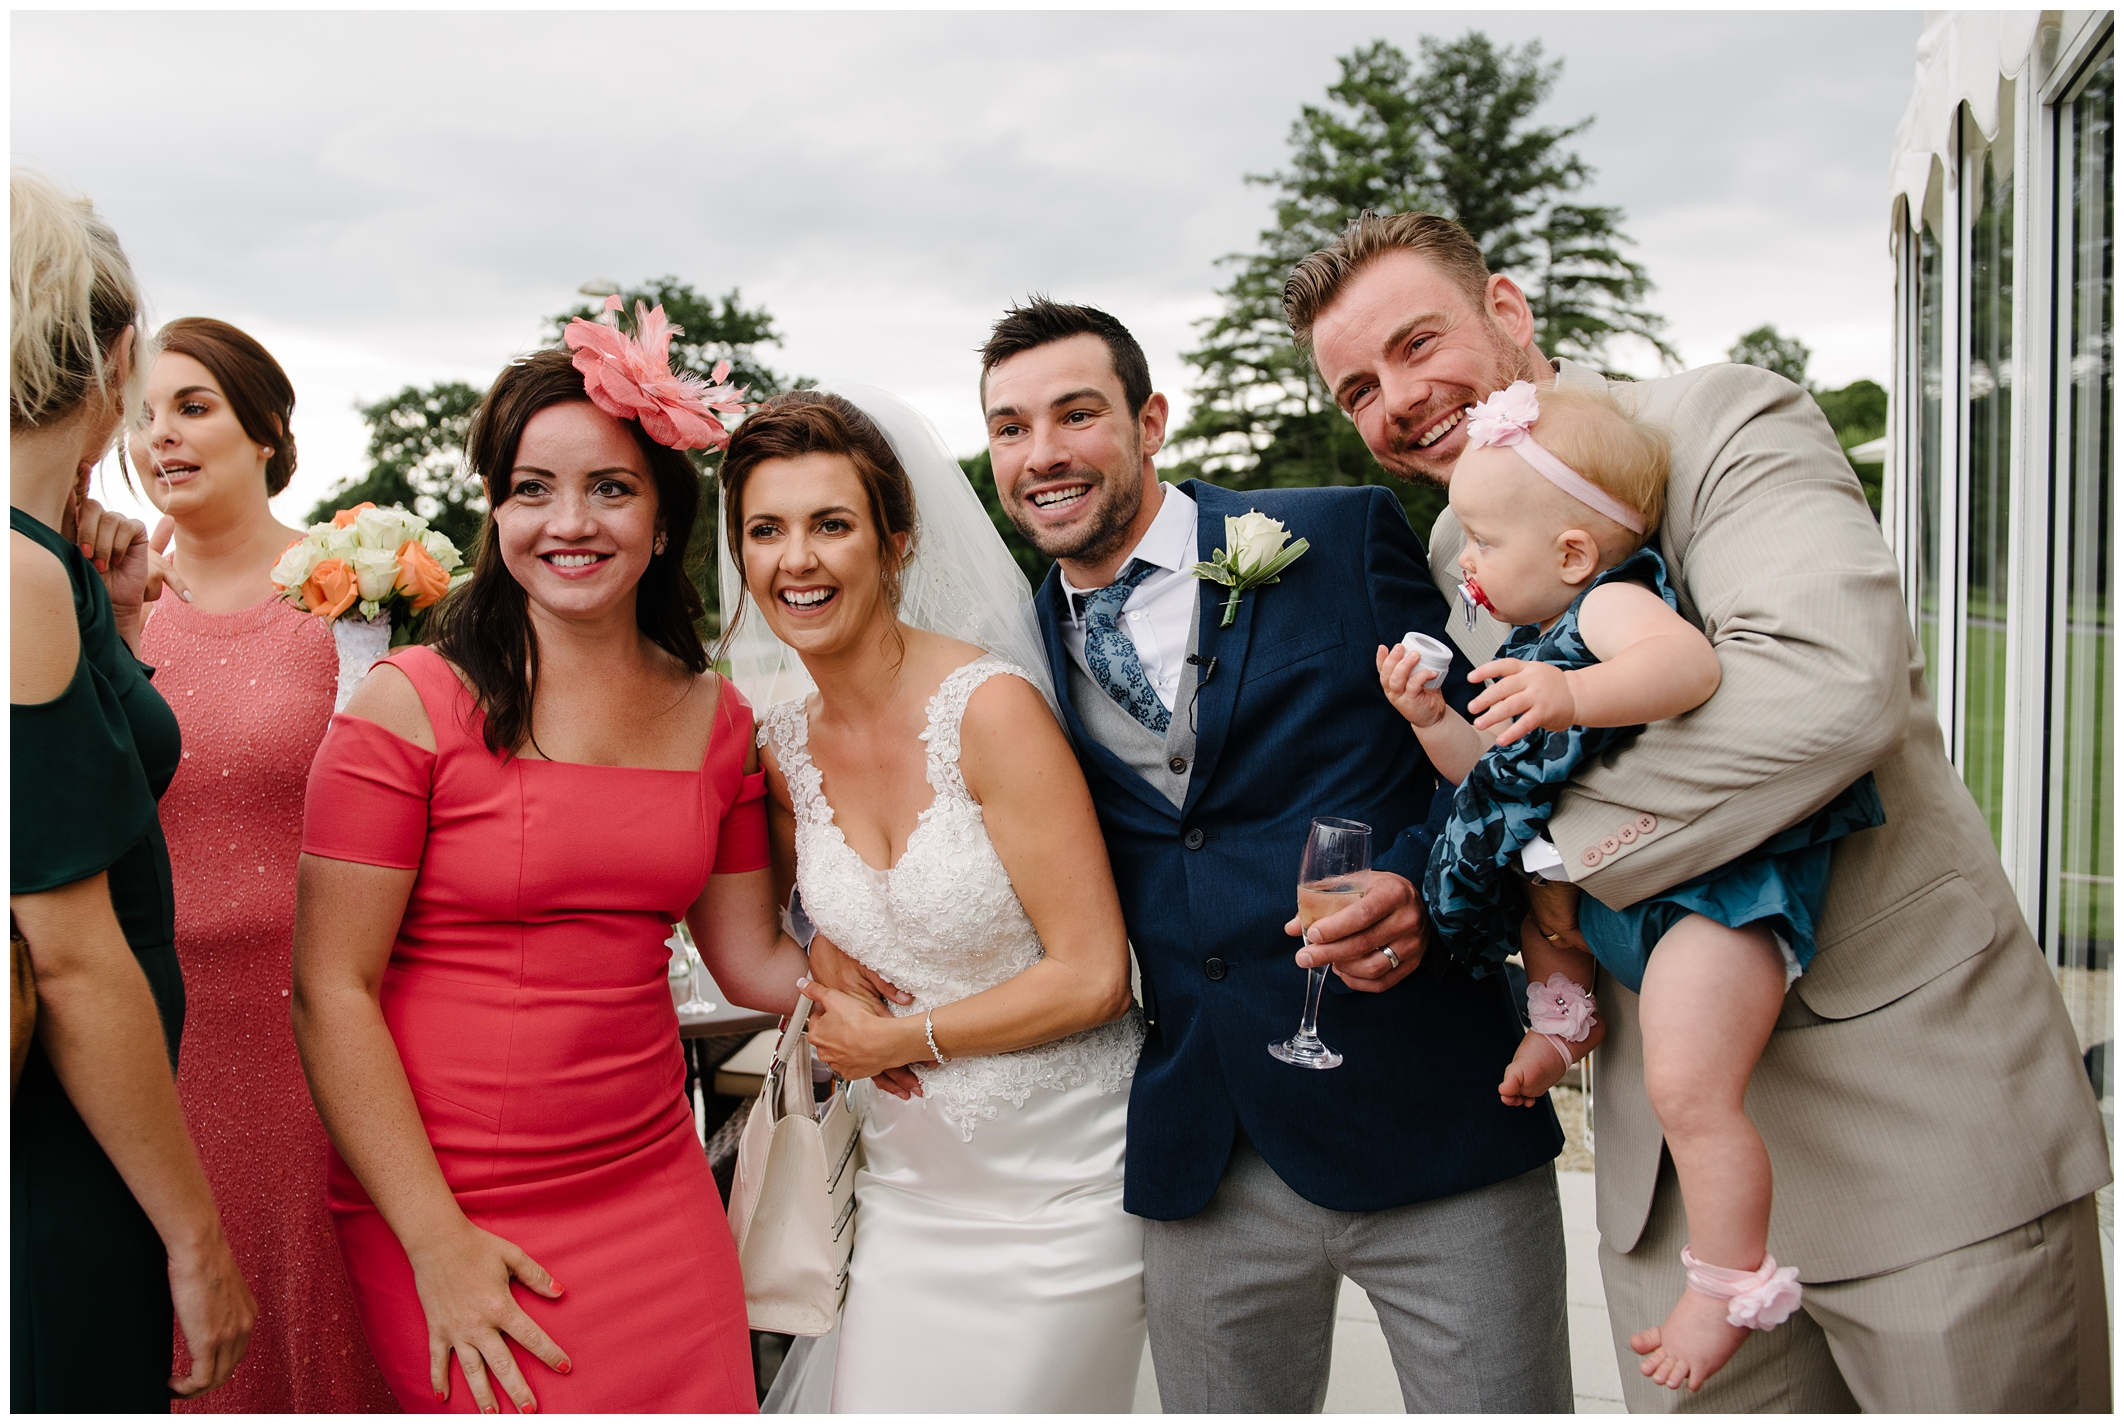 Lynsey_Andy_Rossharbour_Fermanagh_wedding_jude_browne_photography_0083.jpg